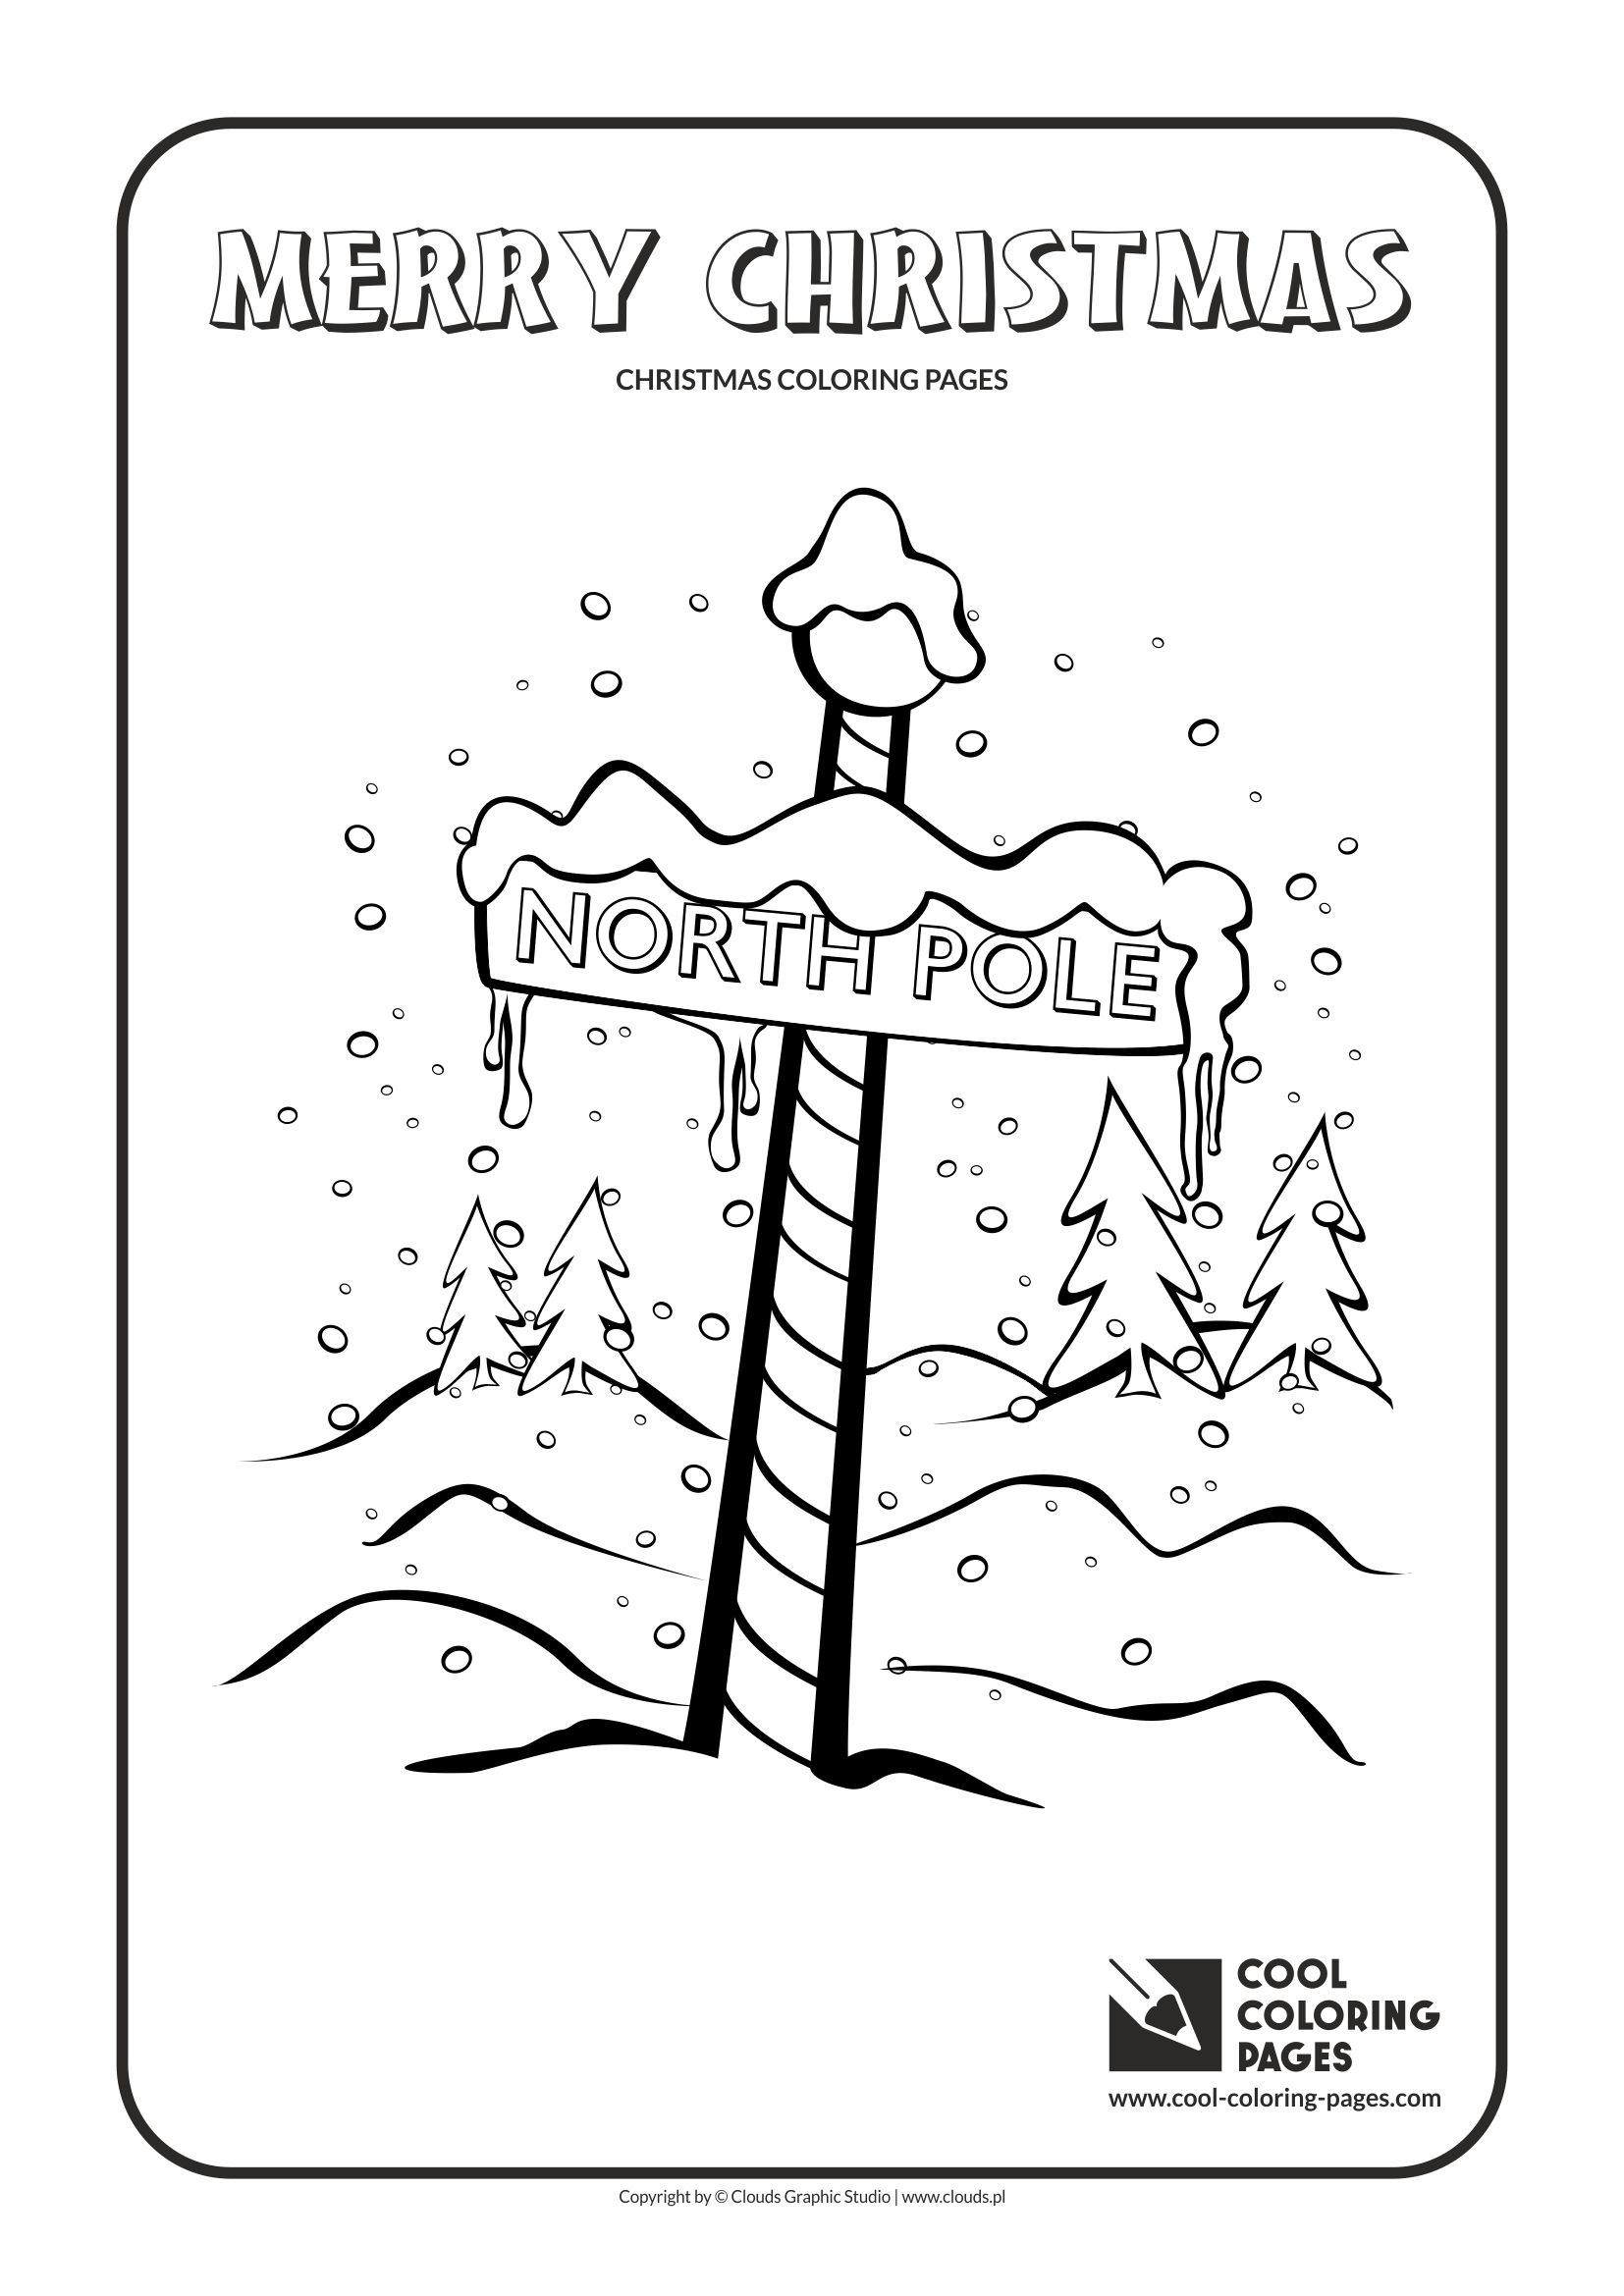 Cool Coloring Pages - Holidays / North Pole no 2 / Coloring page with North Pole no 2